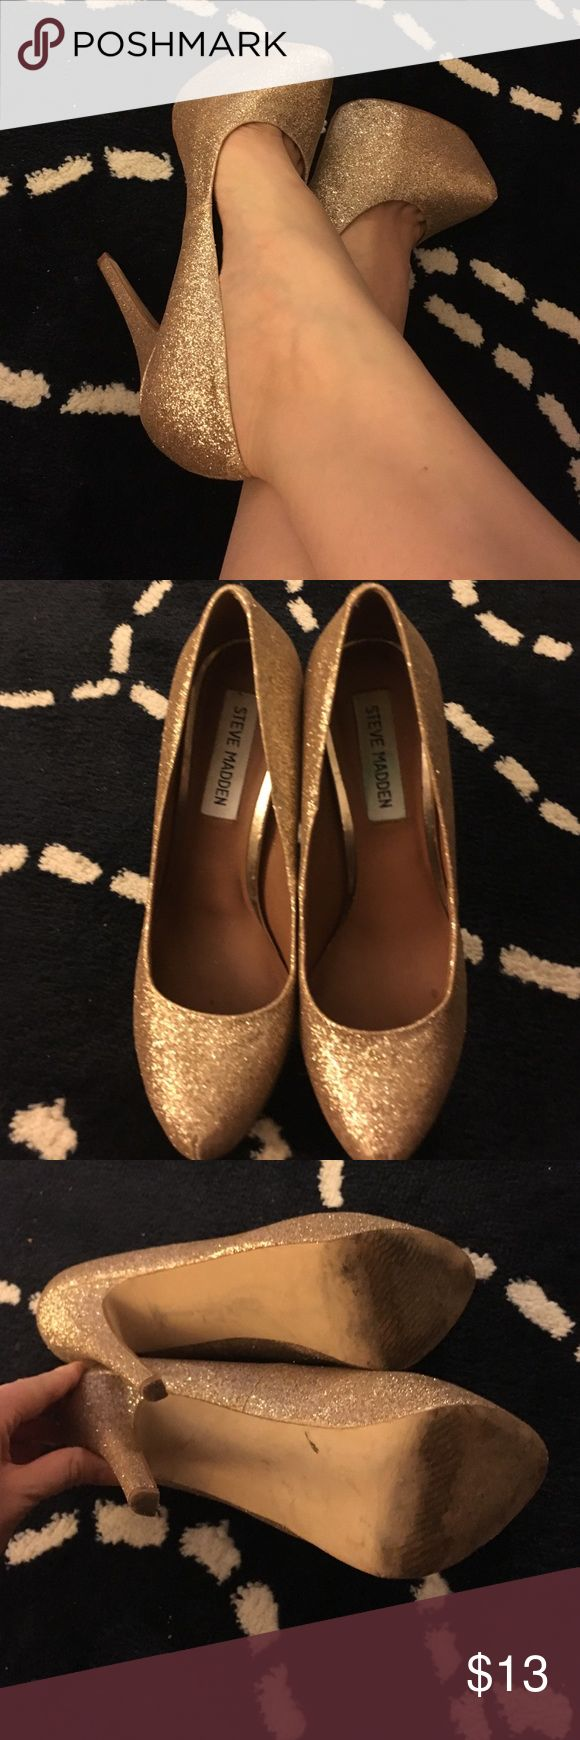 Gold glitter Steve Madden high heels High heeled stilettos in gold glitter by Steve Madden. Steve Madden Shoes Heels